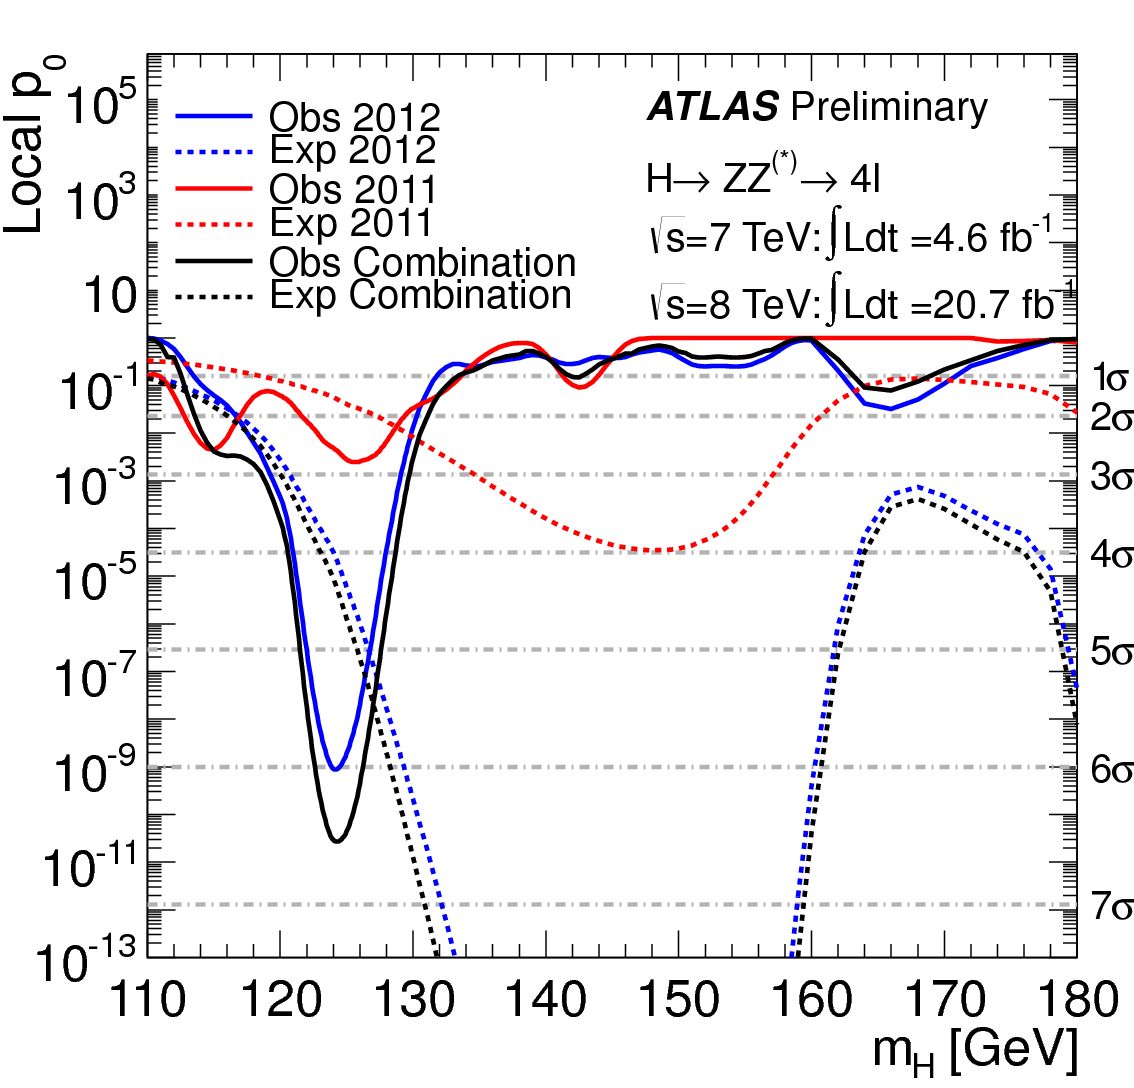 P-value plot for 2011 and 2012 data of Higgs decaying in two Z bosons, then four leptons (electrons or muons). The p-value is the probability of having observed the data seen in ATLAS, if there was no Higgs. In this case the lowest point of the p-value is approximately 2*10^-11, or a 2 in 100 billion chance.